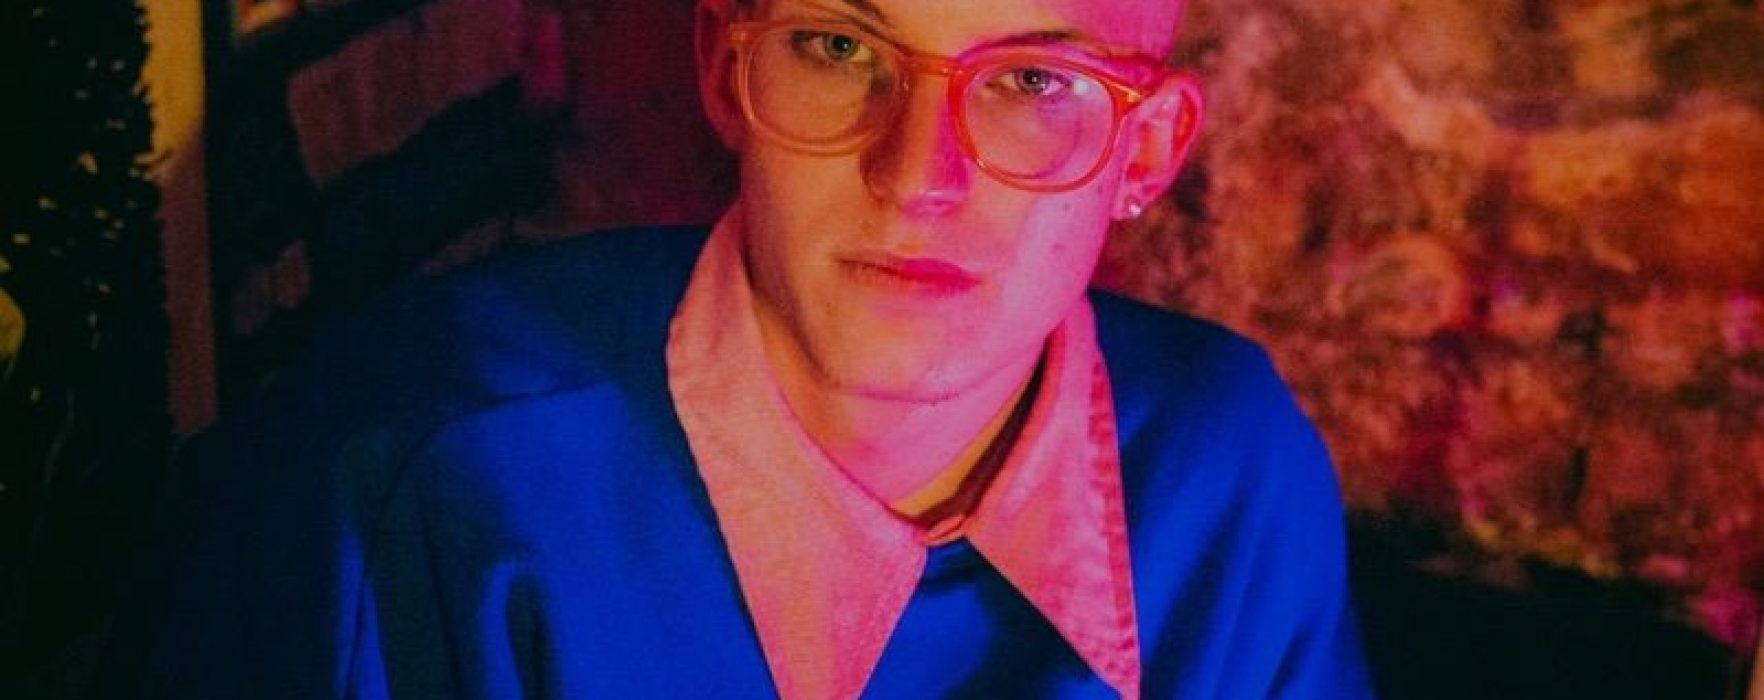 """""""I label it as pop music just because it's the broadest category""""- Gus Dapperton"""